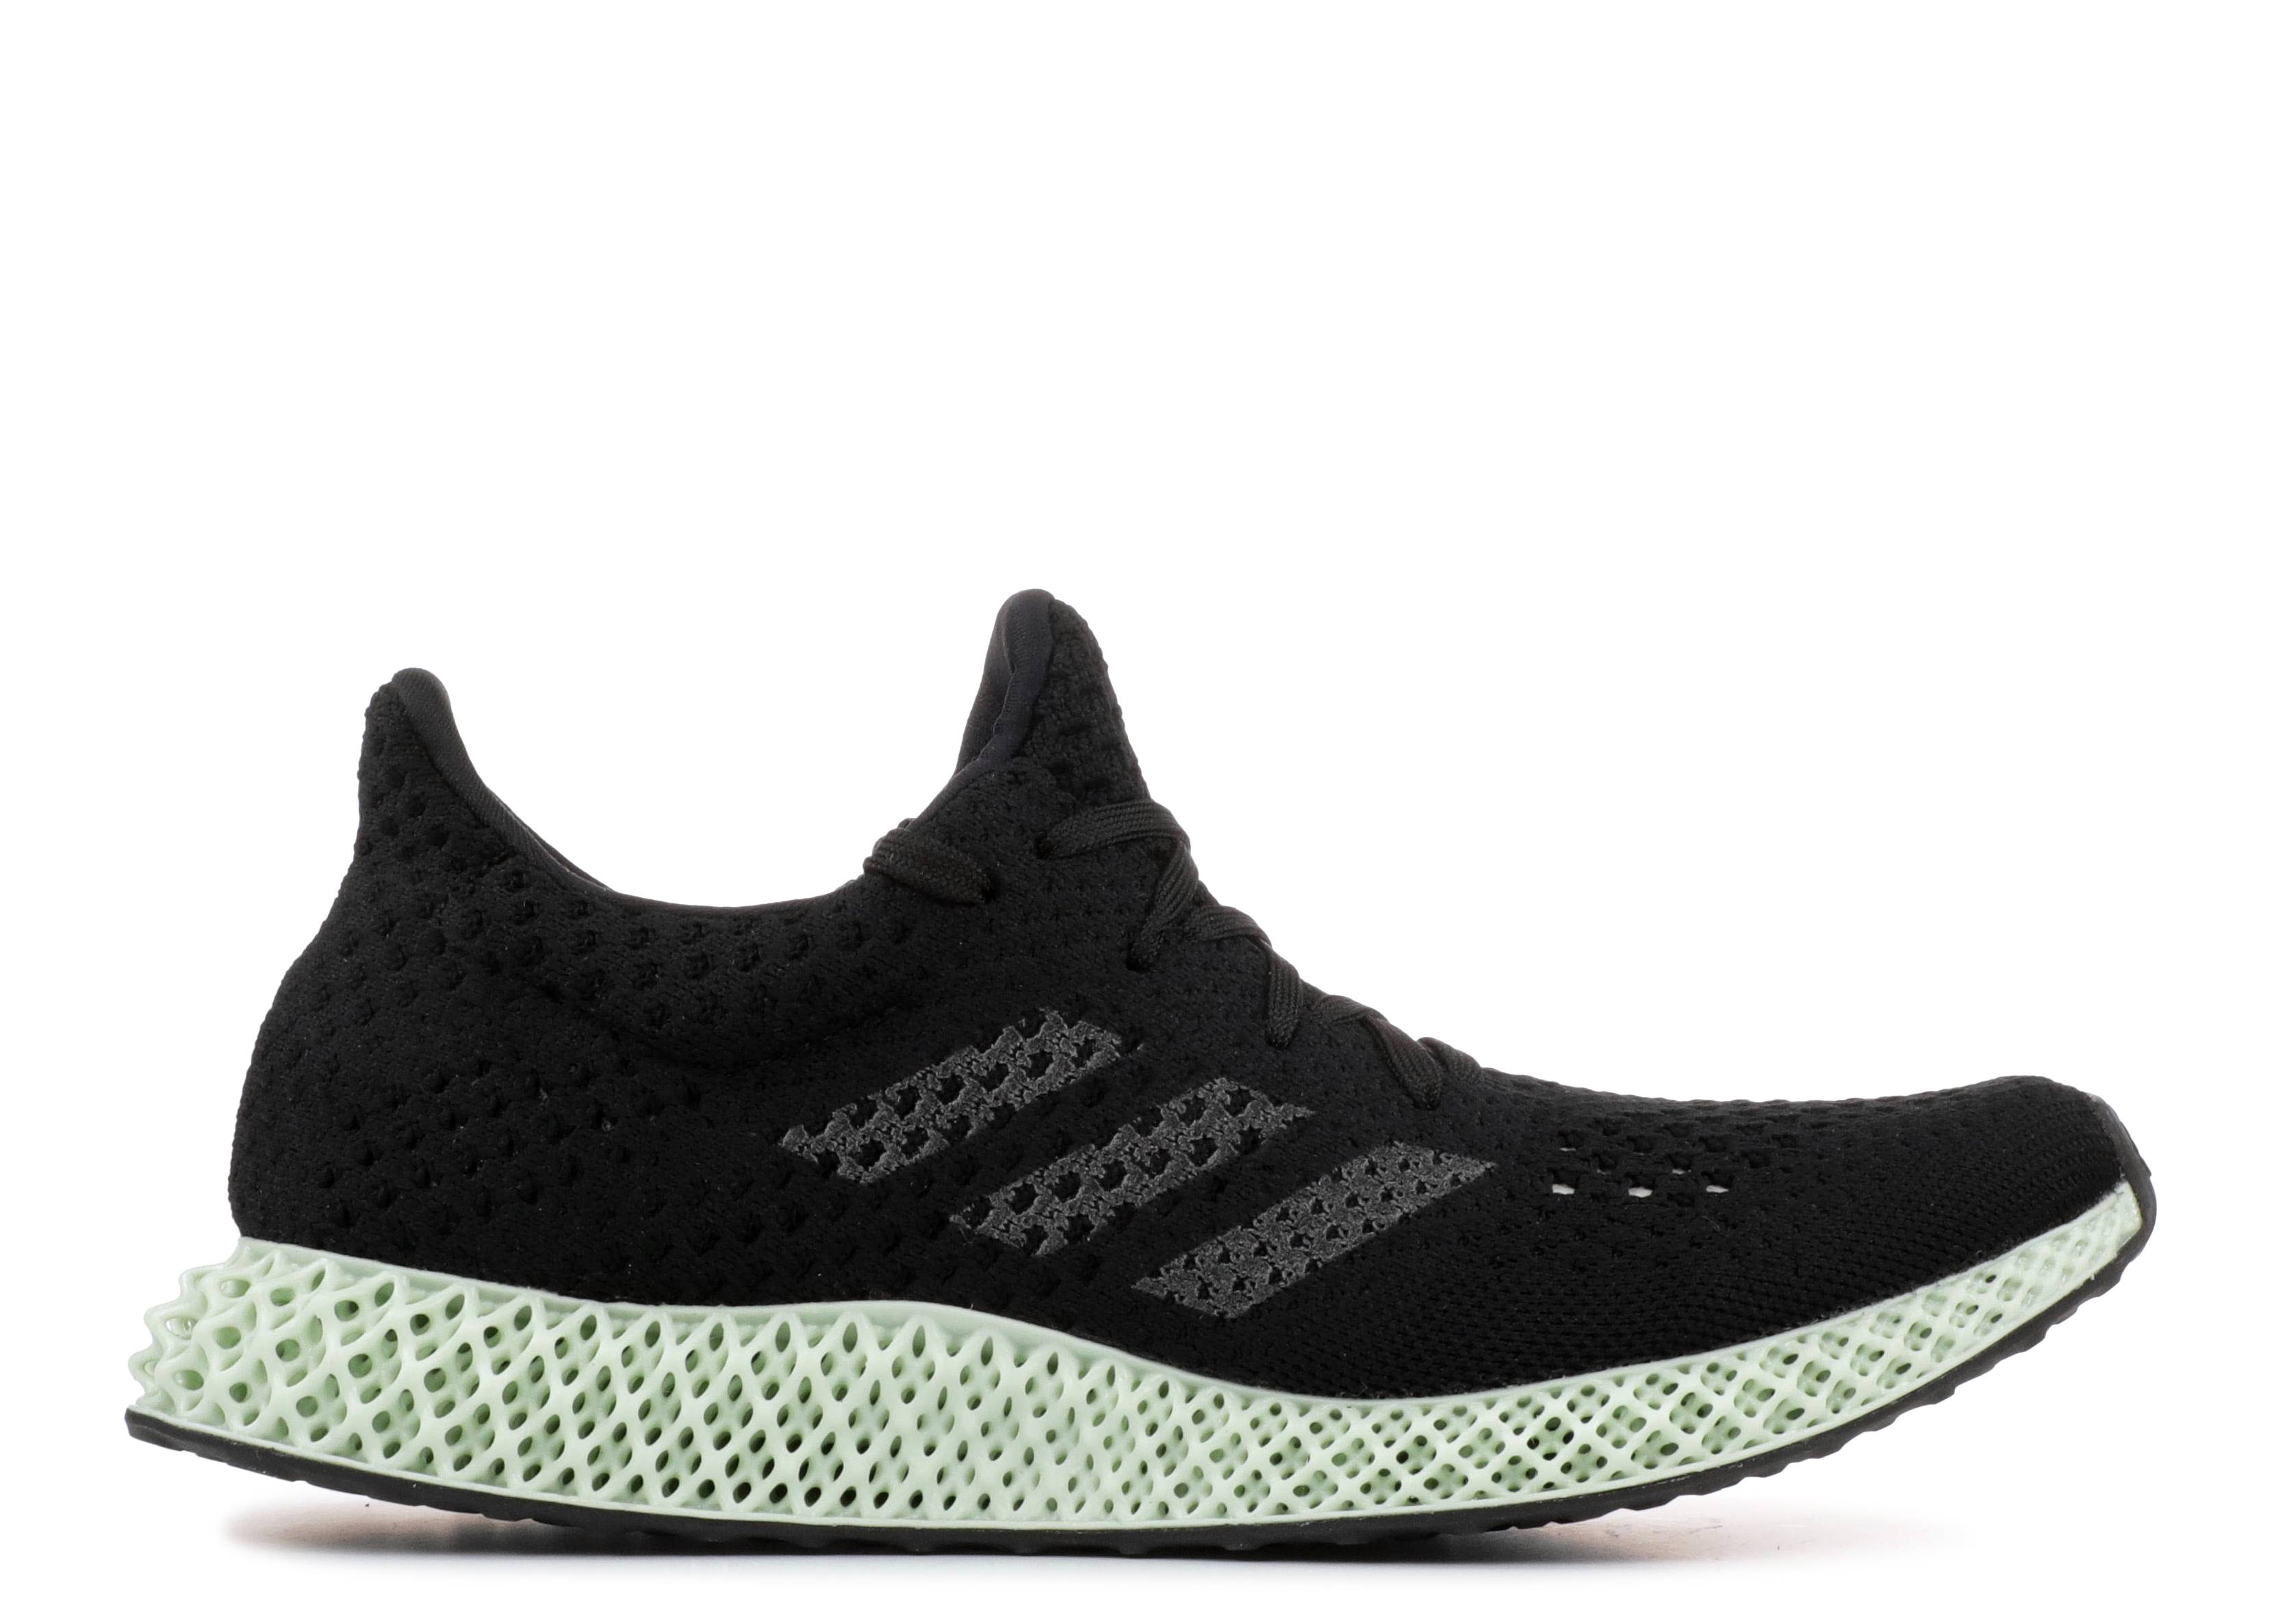 low priced fe066 ebebc Futurecraft 4D